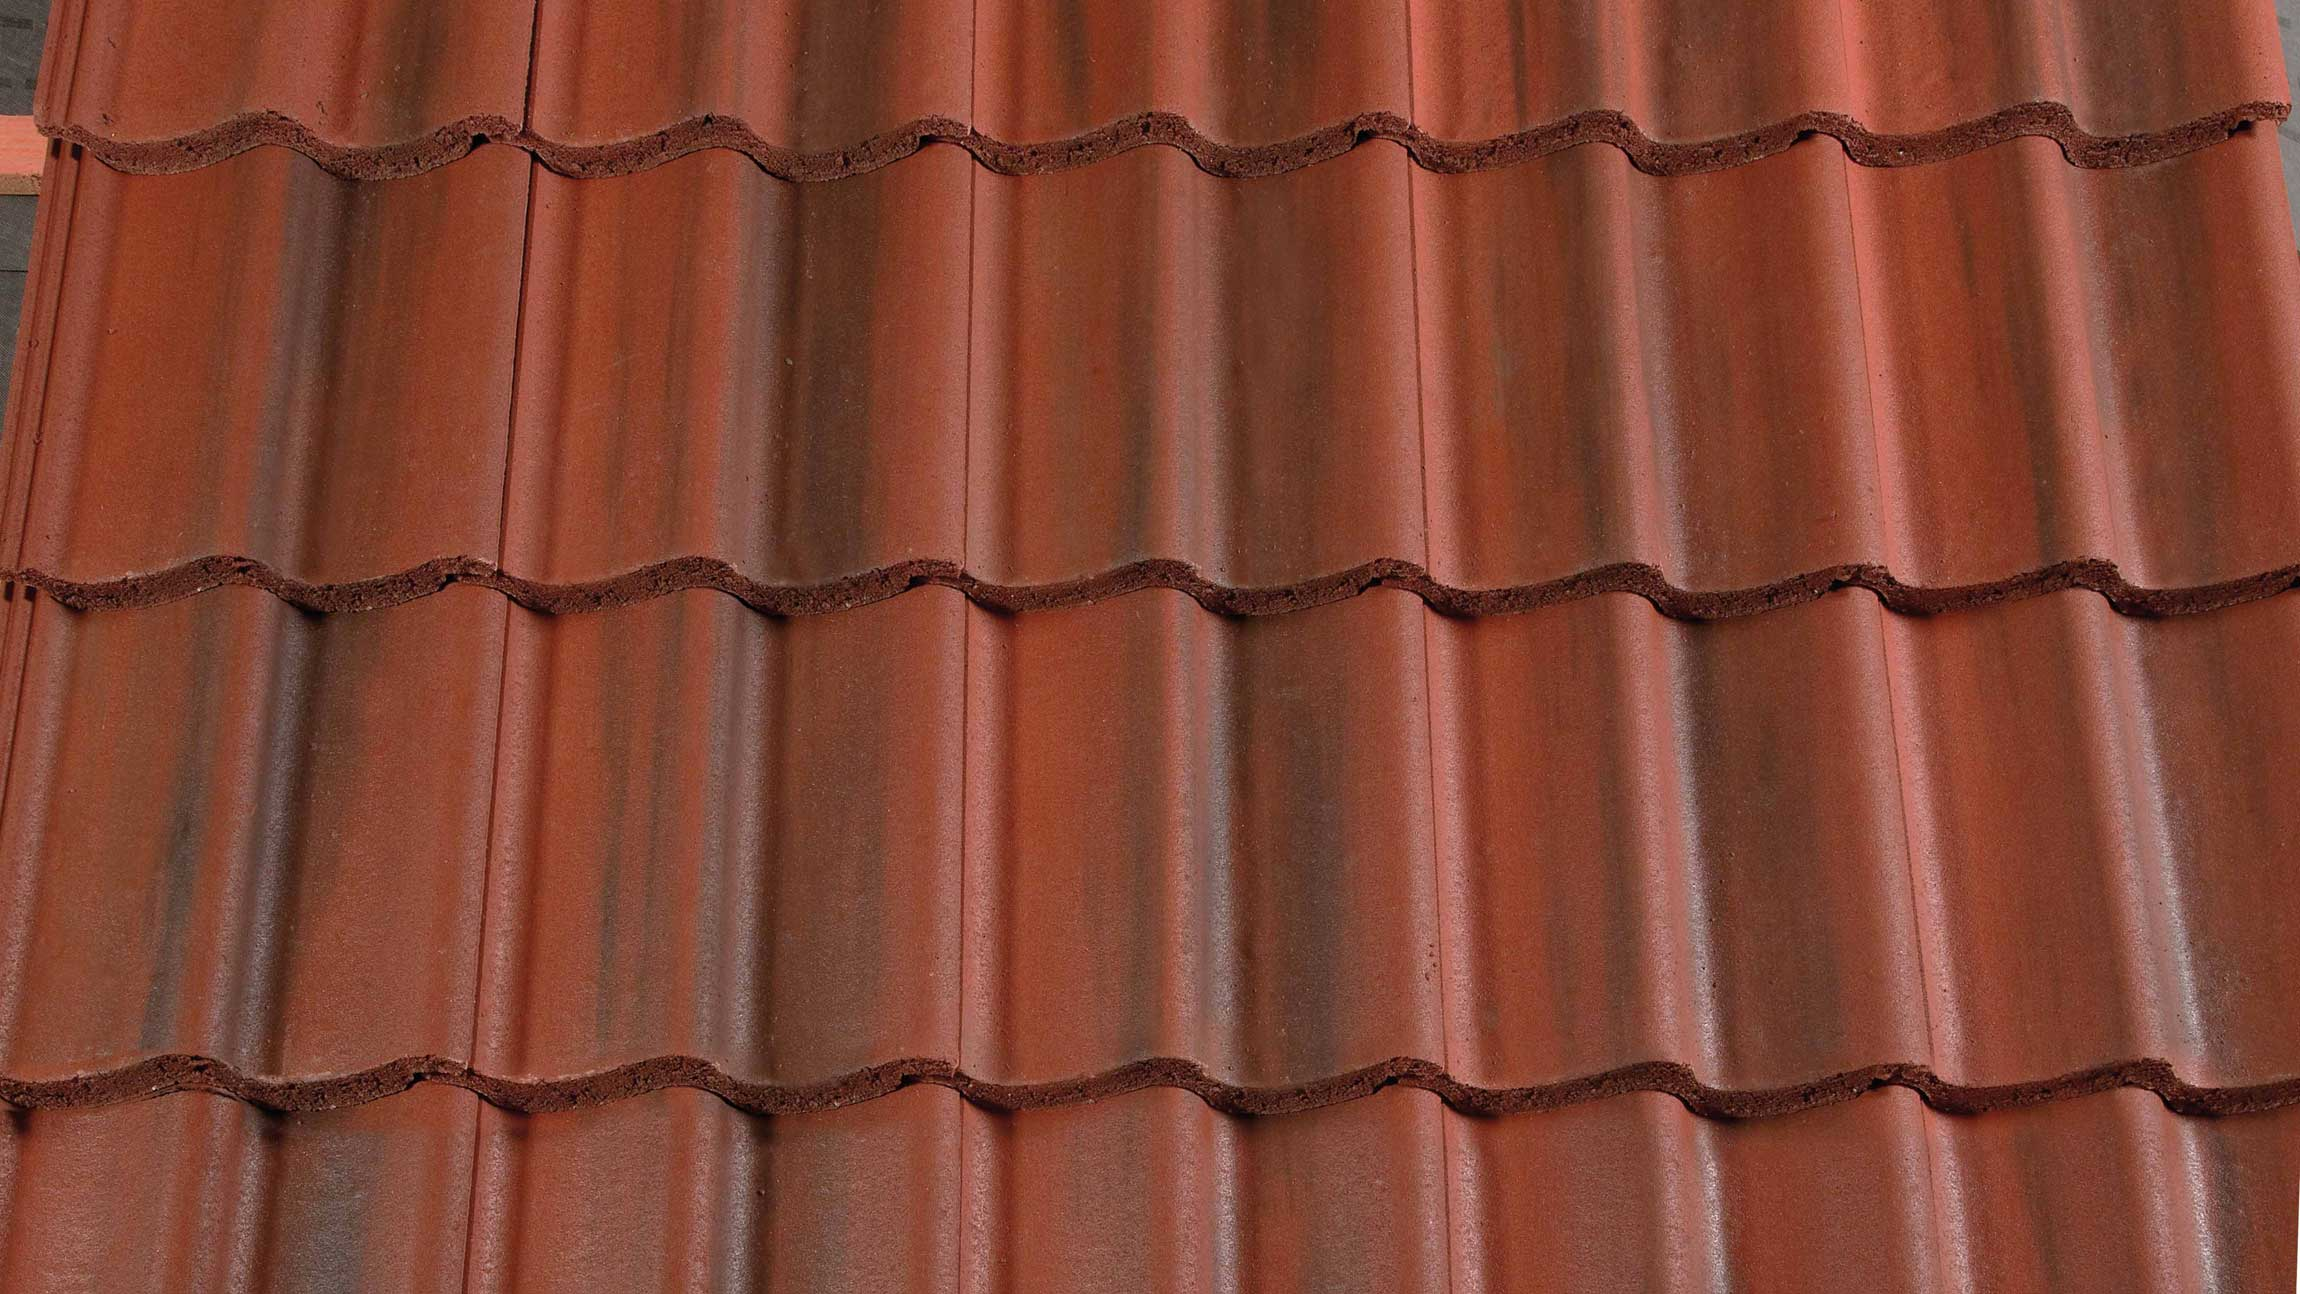 Roofing Products Redland Cathedral Pantiles Jpg